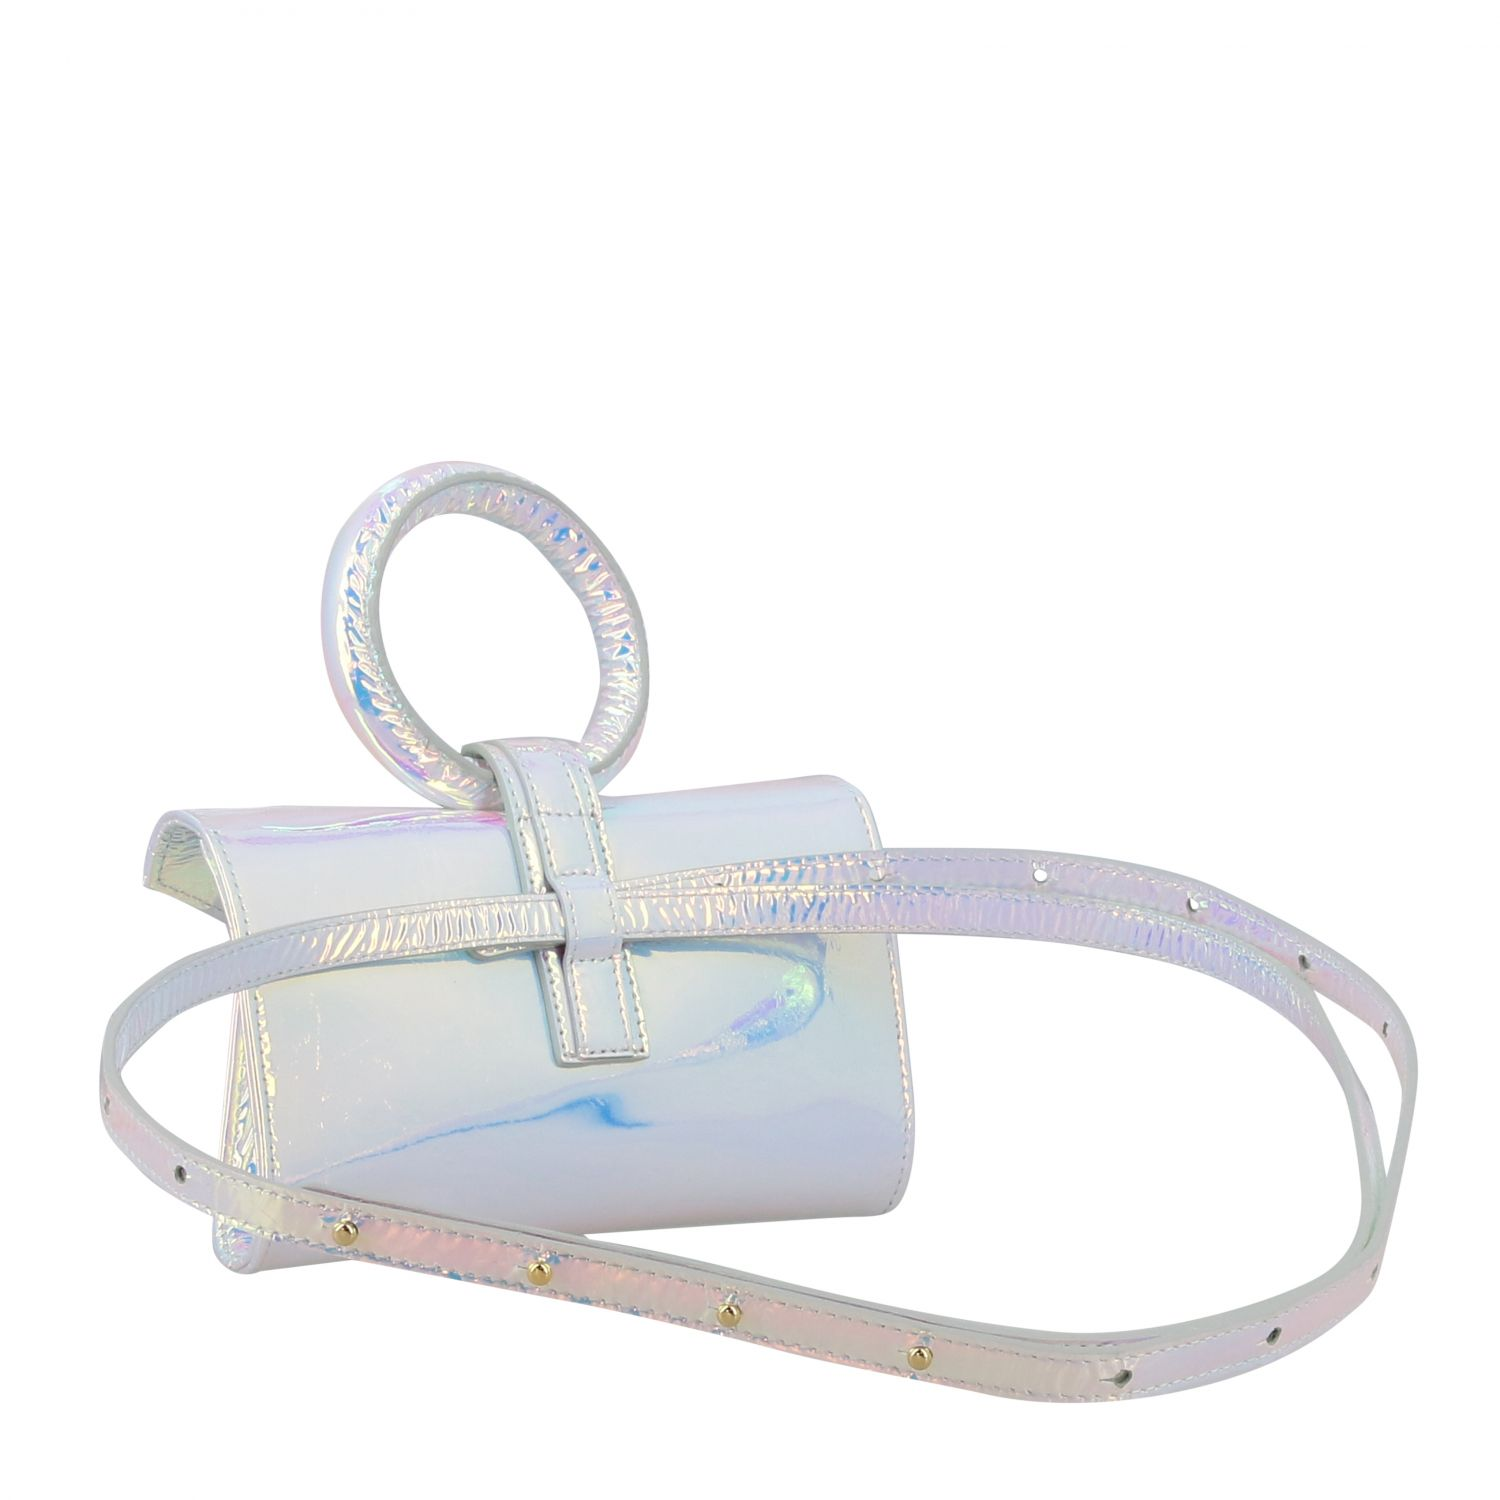 Belt bag Complét: Clutch women ComplÉt multicolor 3